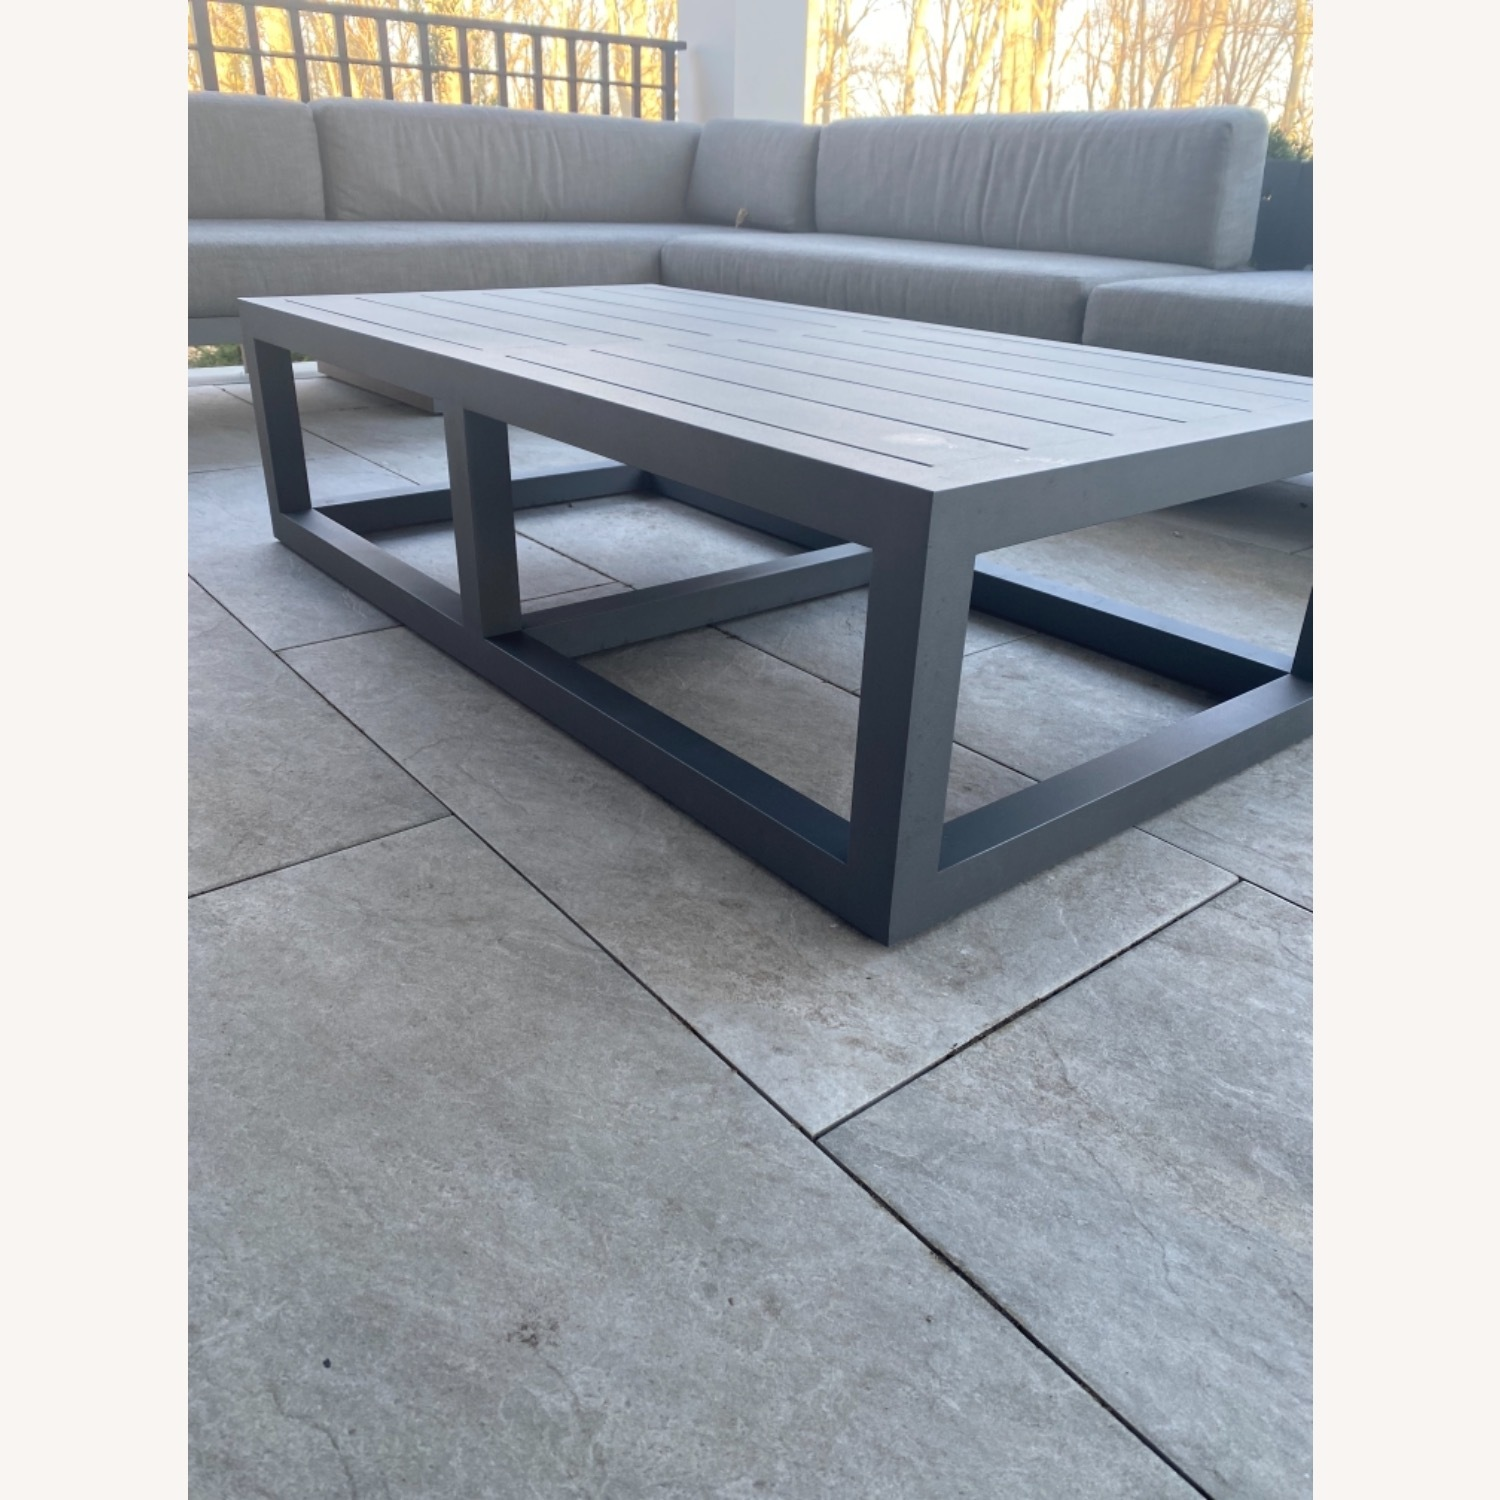 Restoration Hardware Outdoor Coffee Table - image-5